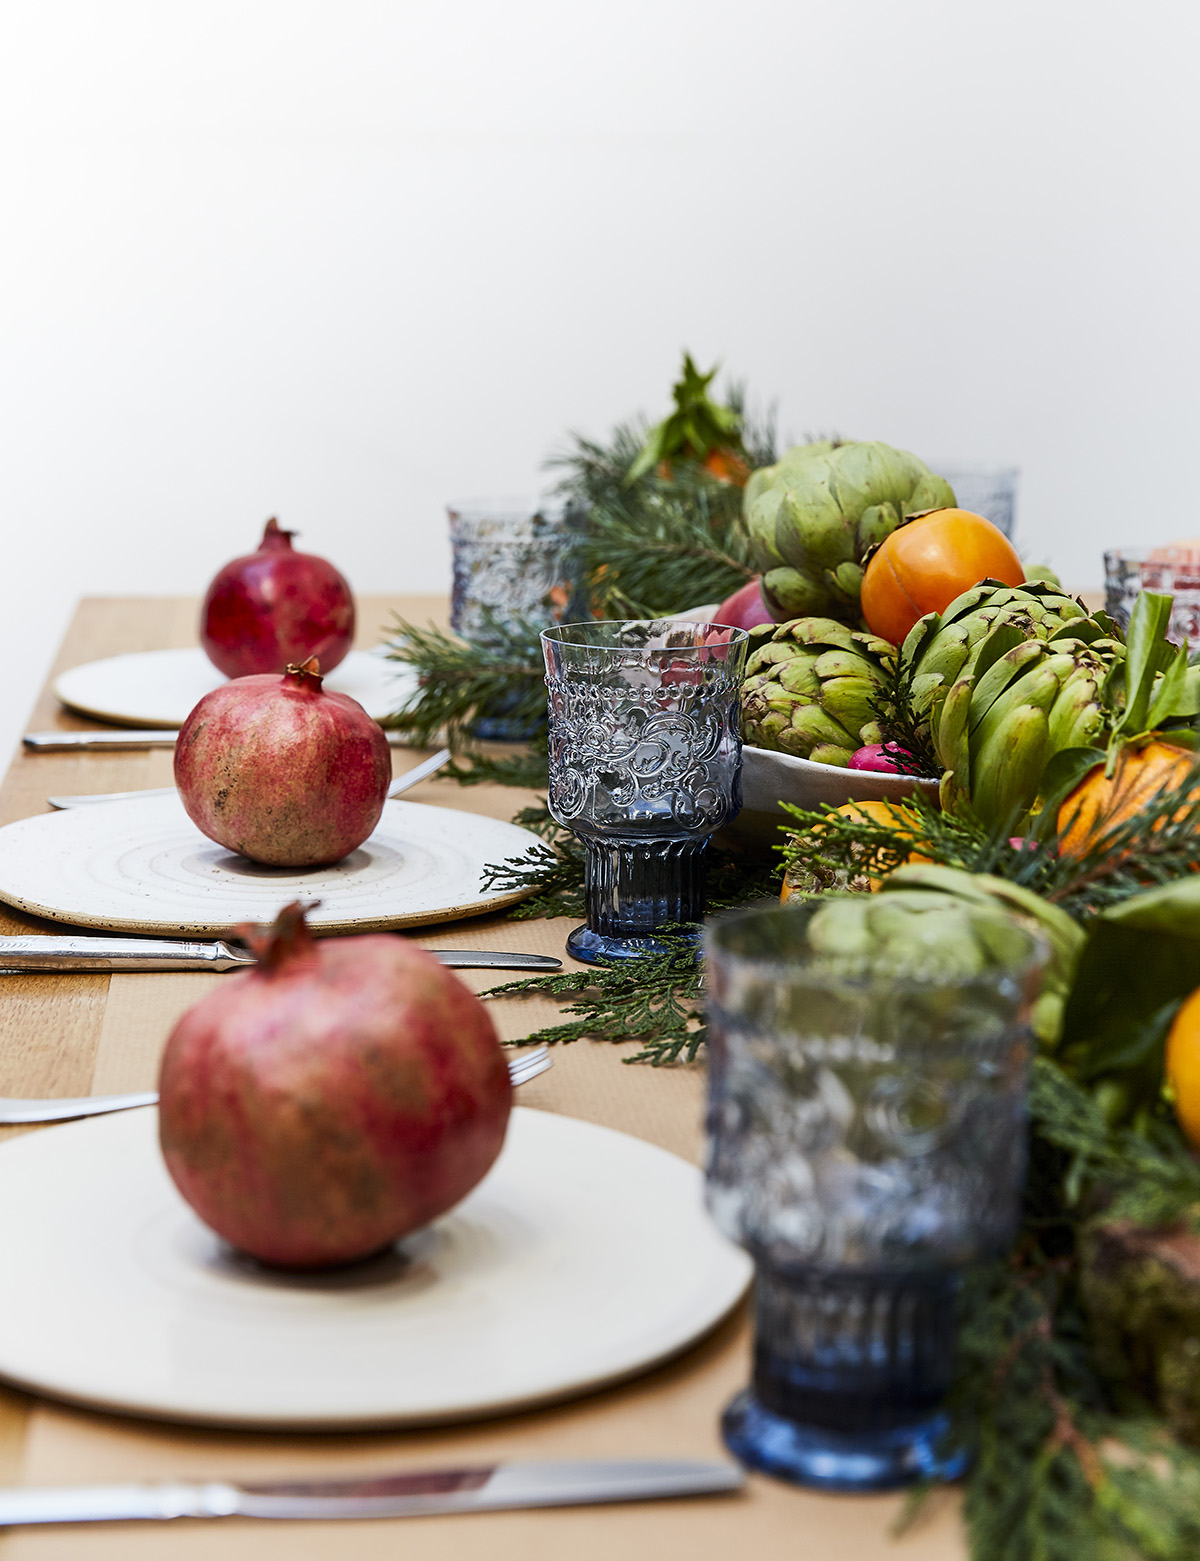 Colourful Christmas table using fresh produce